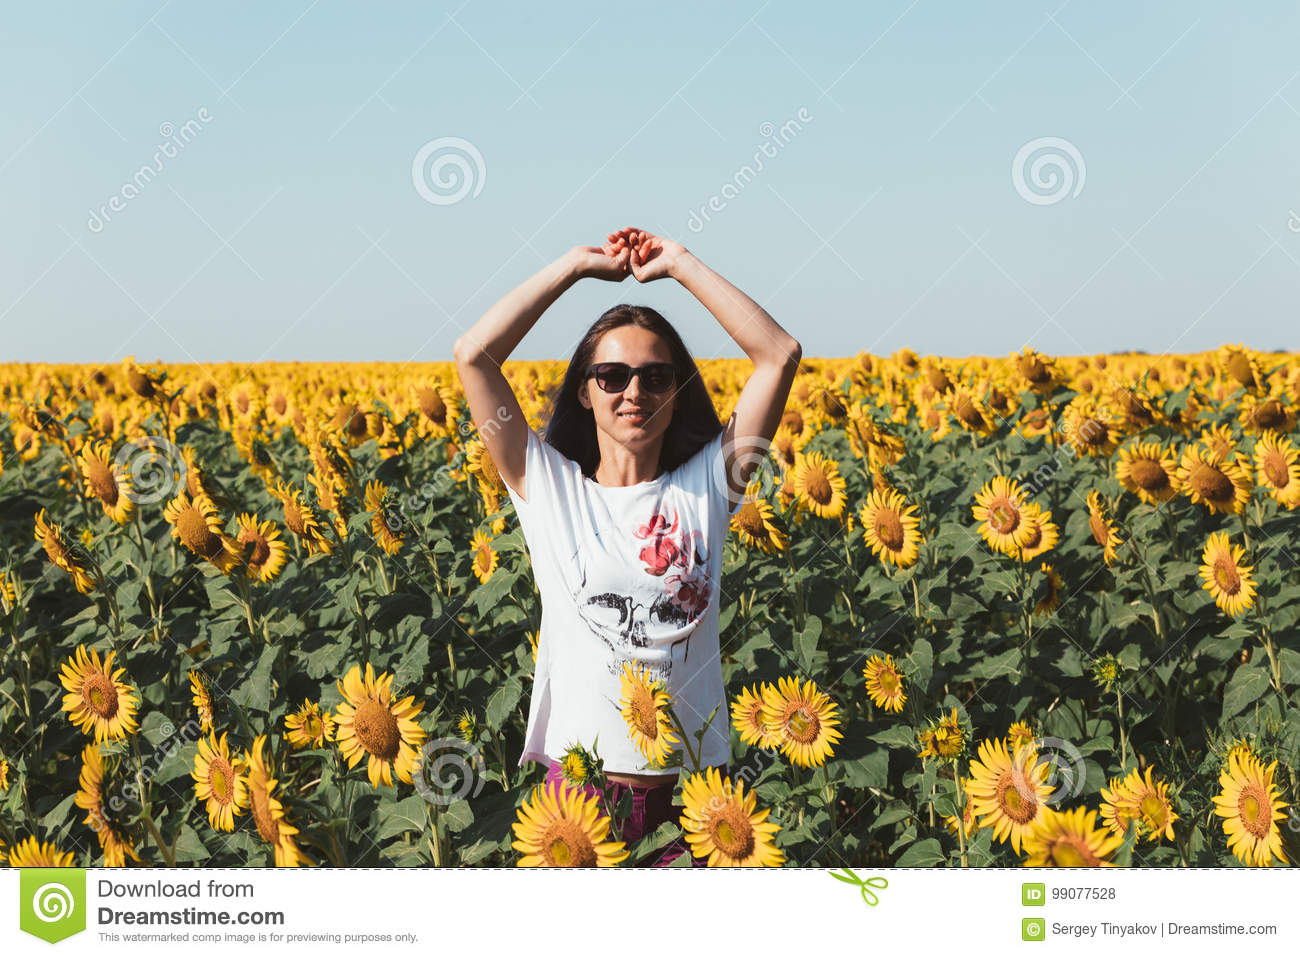 Young Beautiful Girl Standing In Sunflowers And Raising Hands Up. Freedom Lifestyle Journey Concept